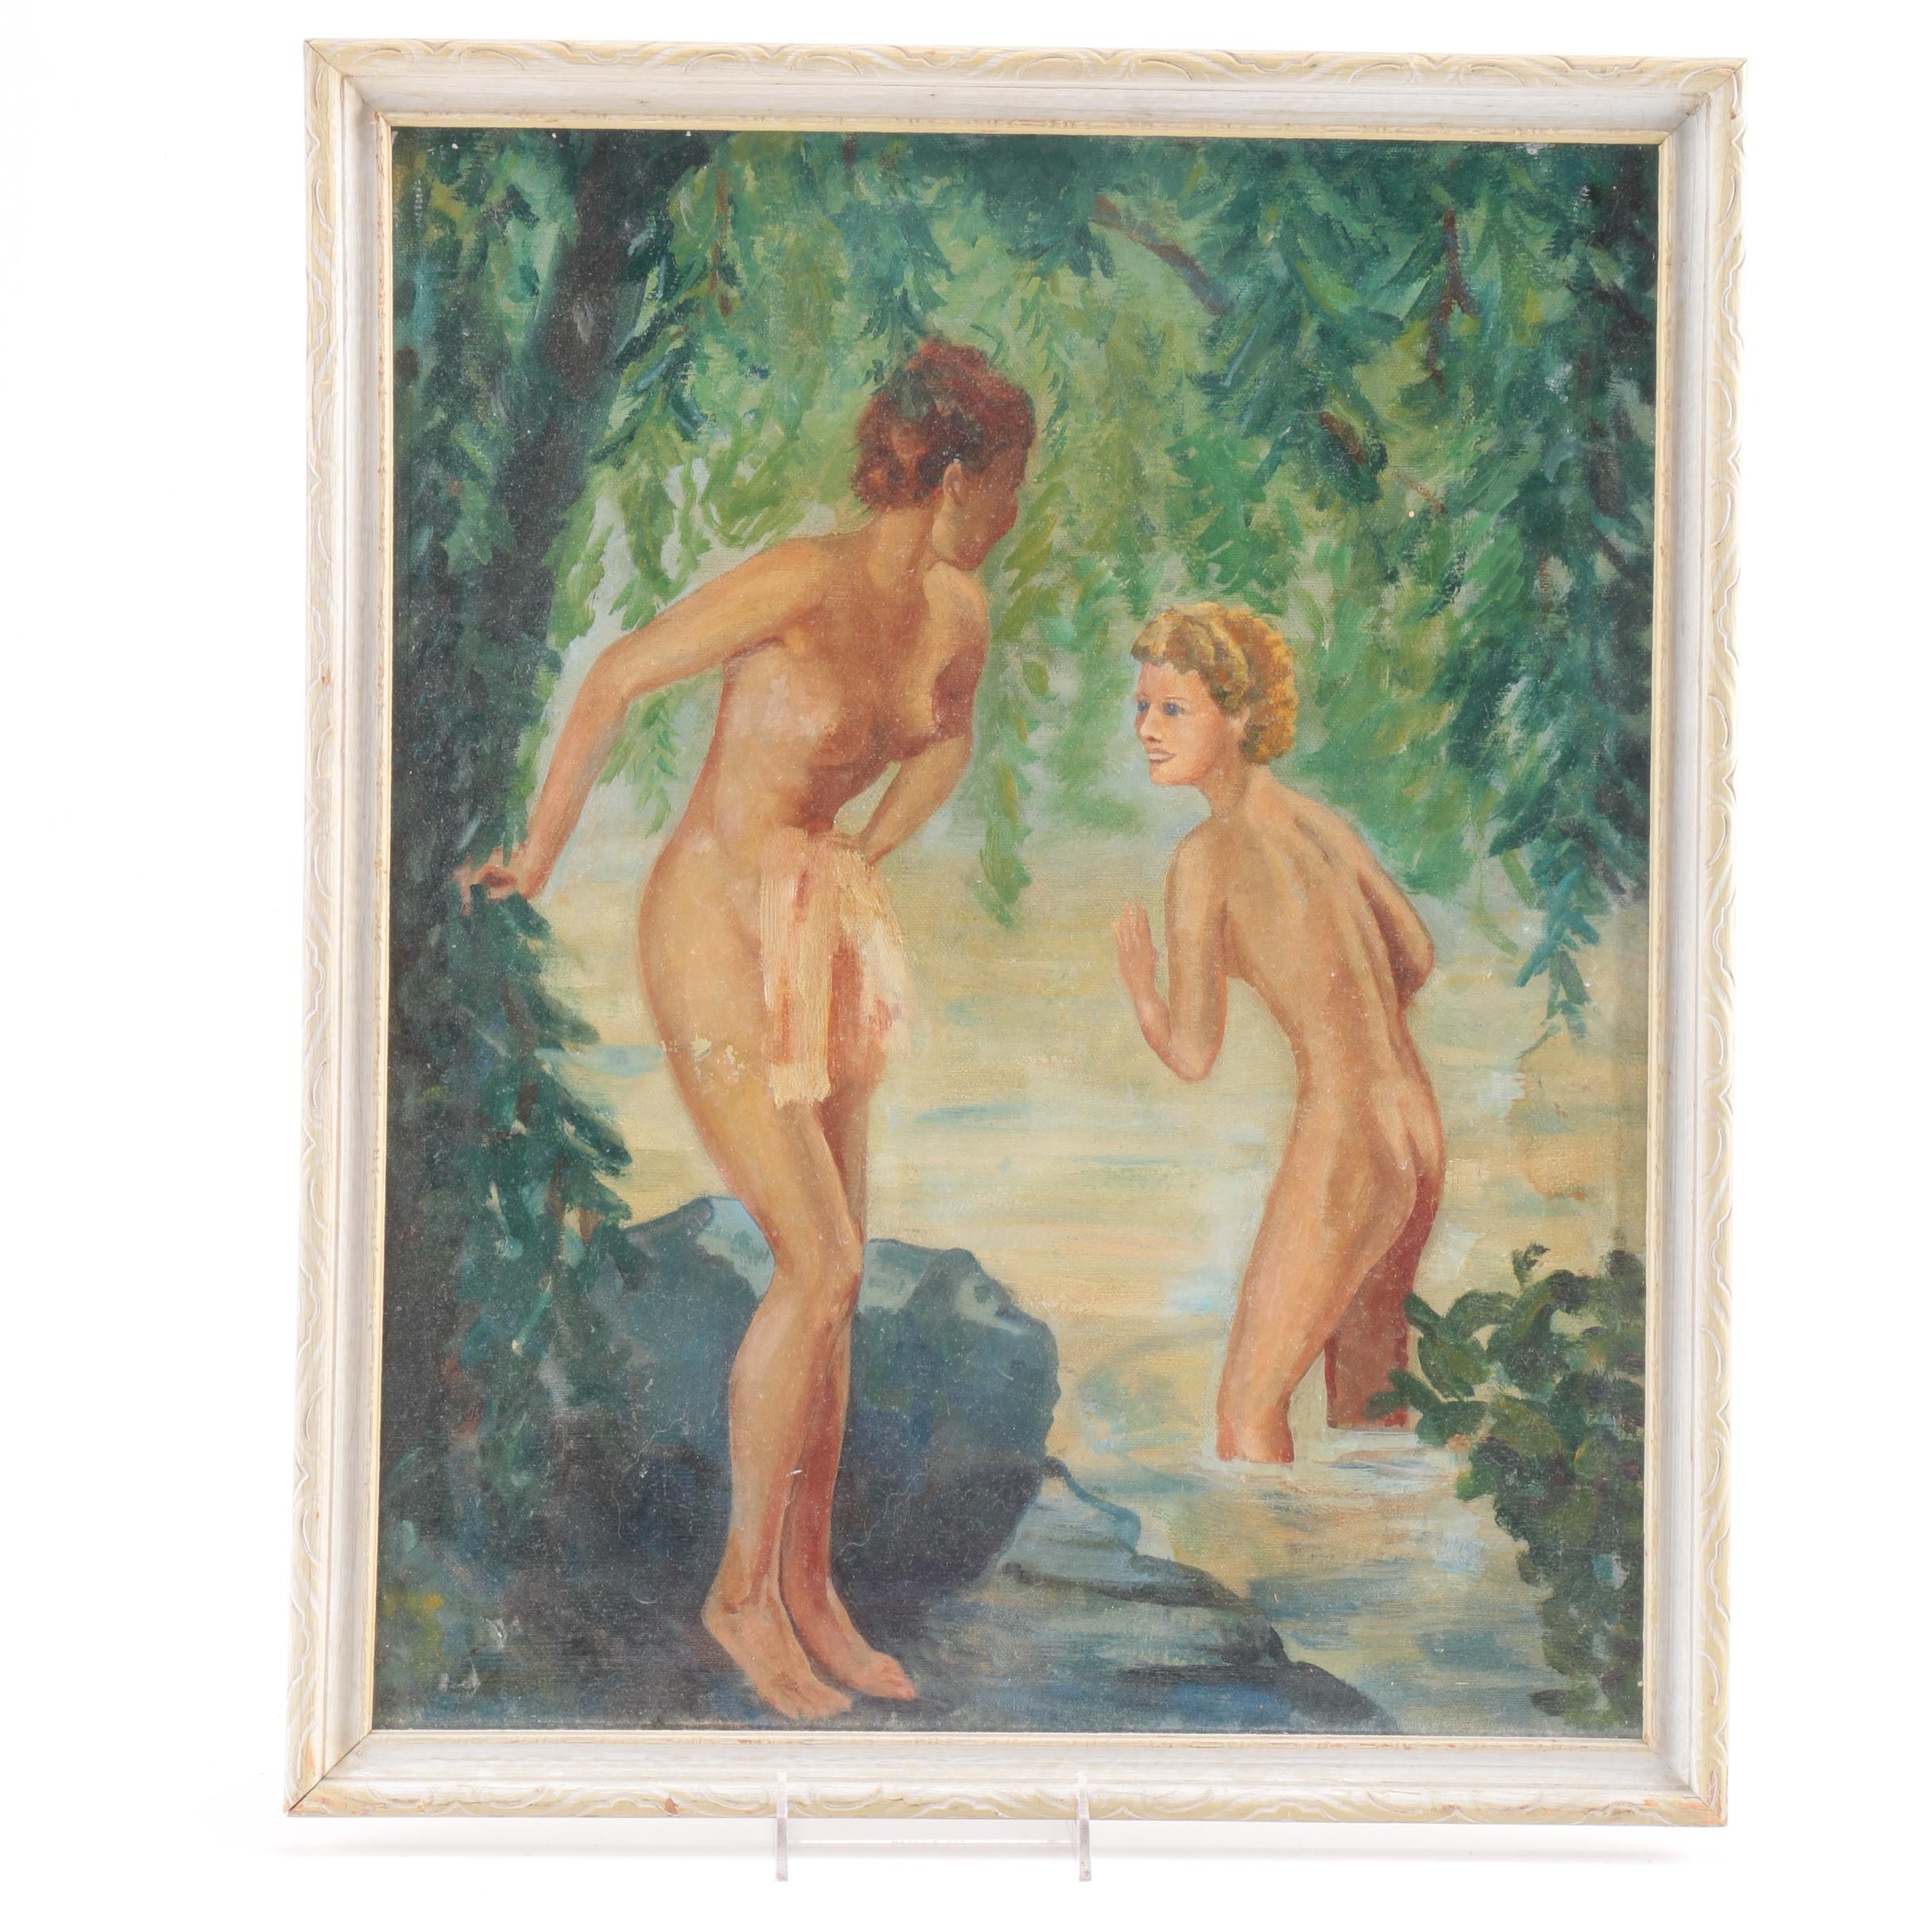 Vintage Oil Painting on Canvas of Nude Figures Bathing in a River